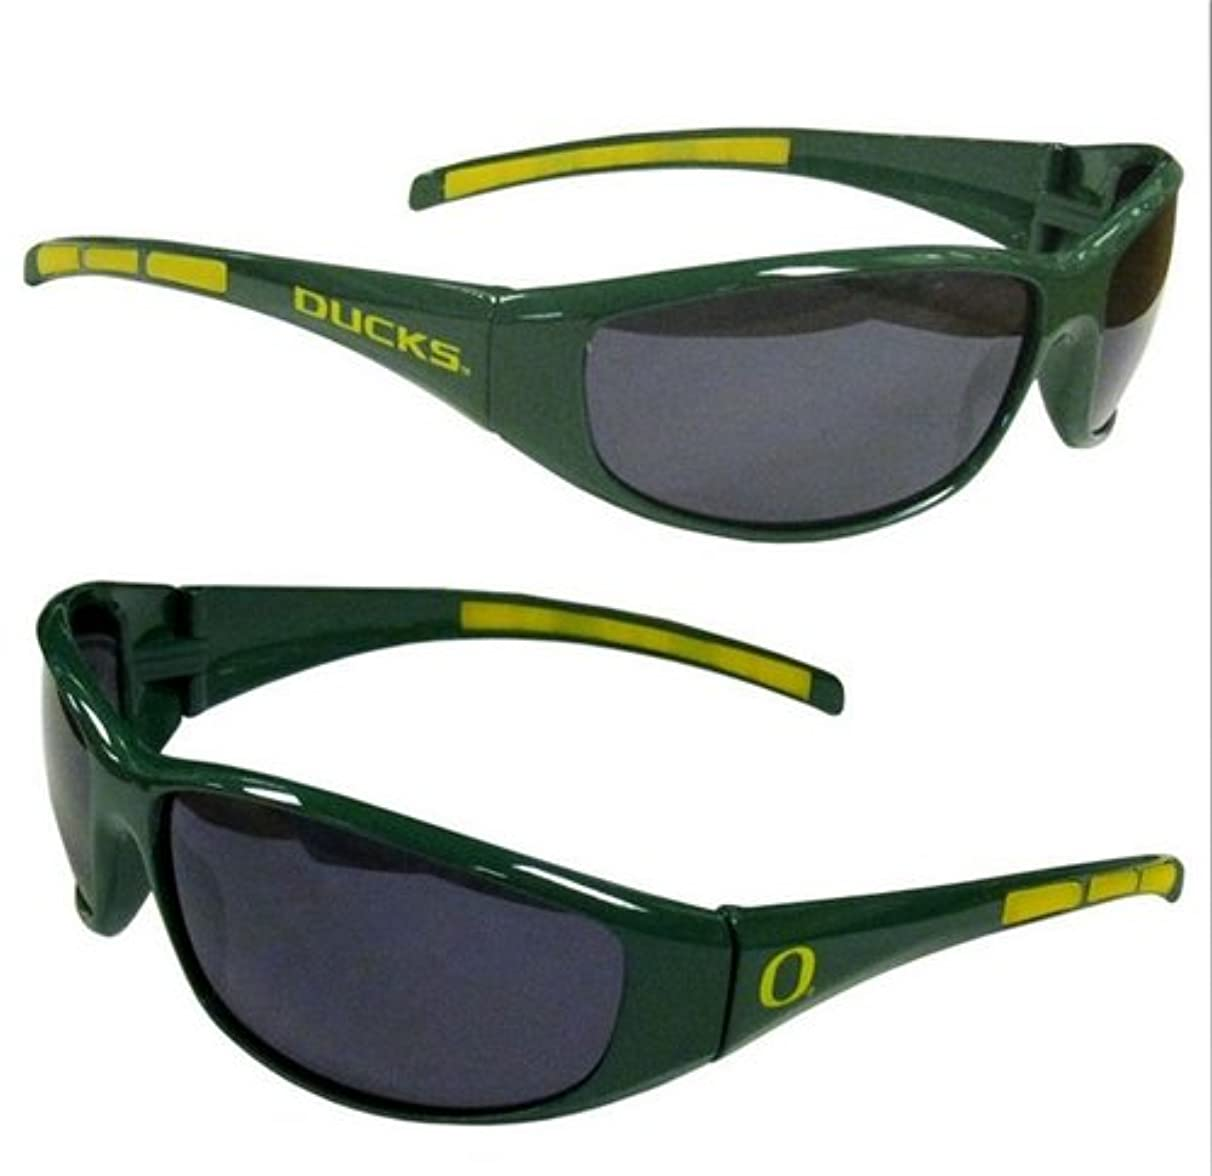 Oregon Ducks Sunglasses